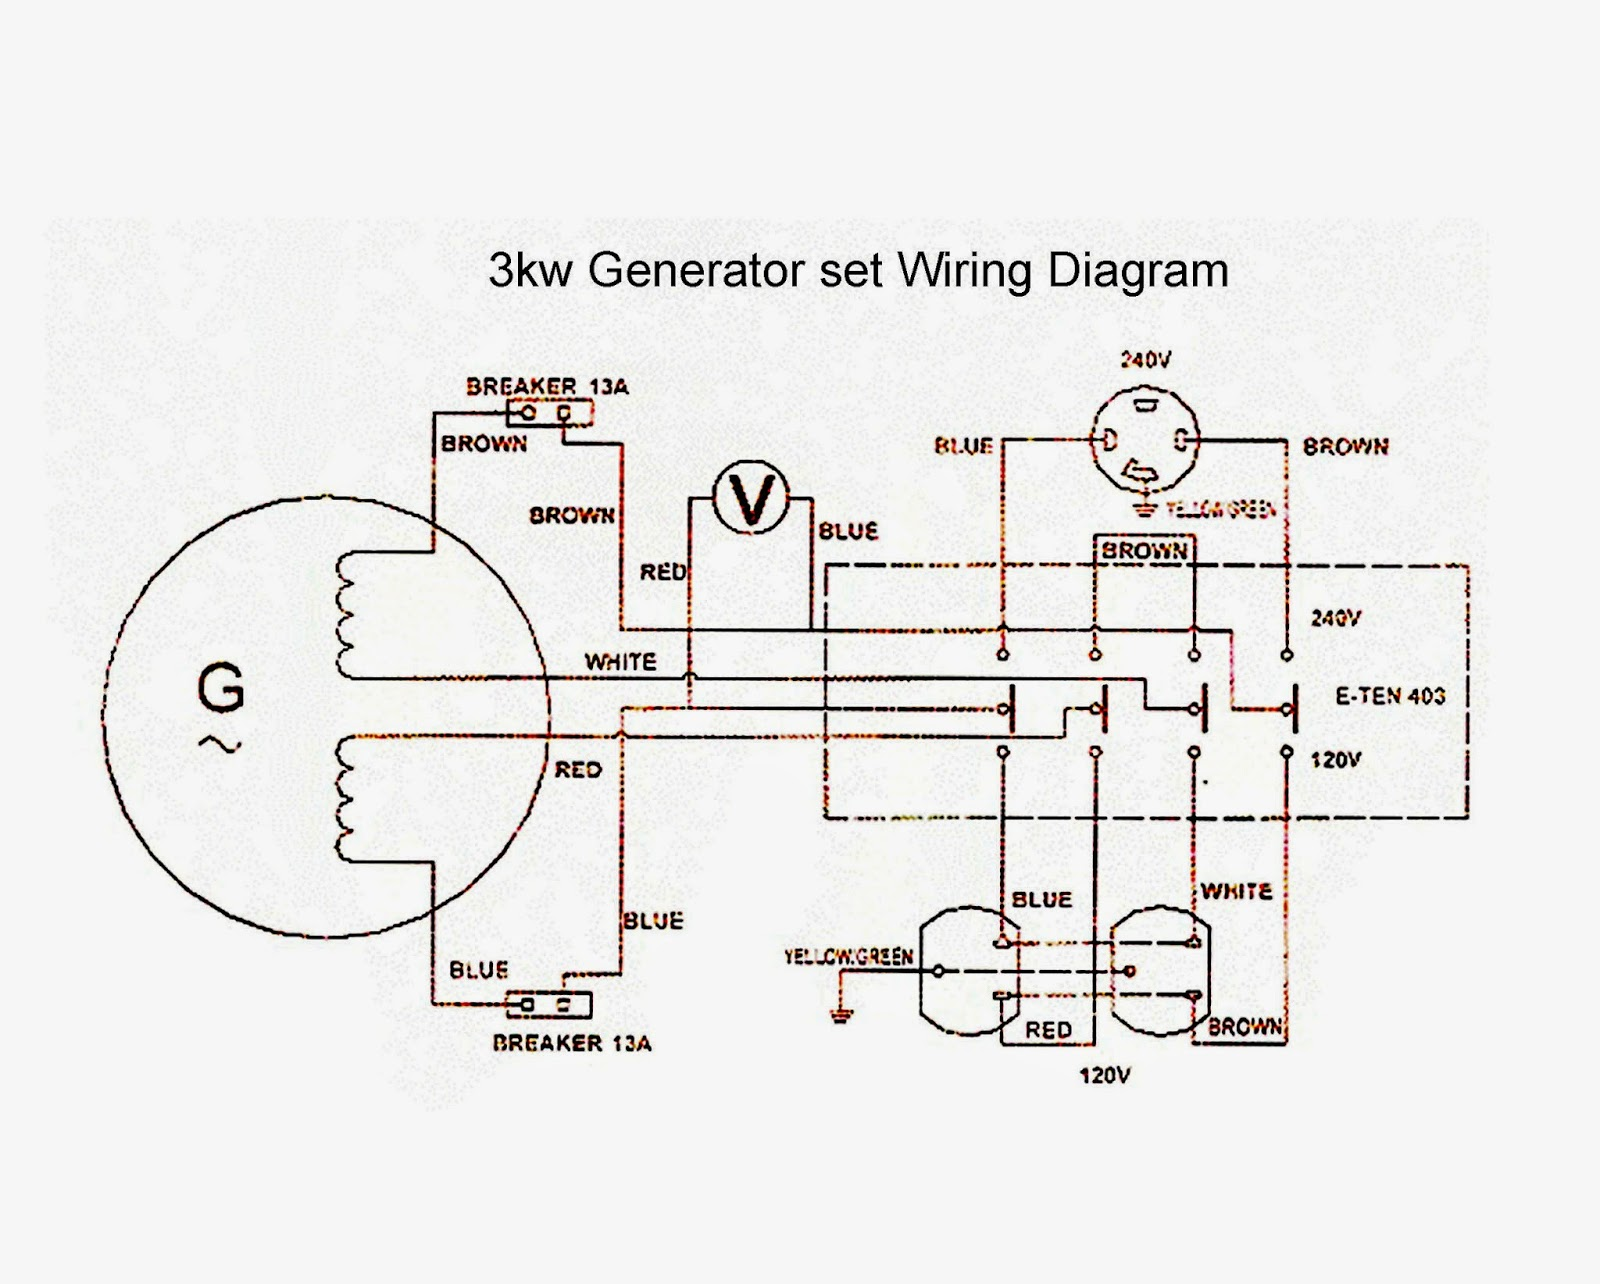 3000w+gensetswiringdiagram+1 28 [ wiring diagram of generator ] starter generator wiring generator wiring diagrams at gsmx.co